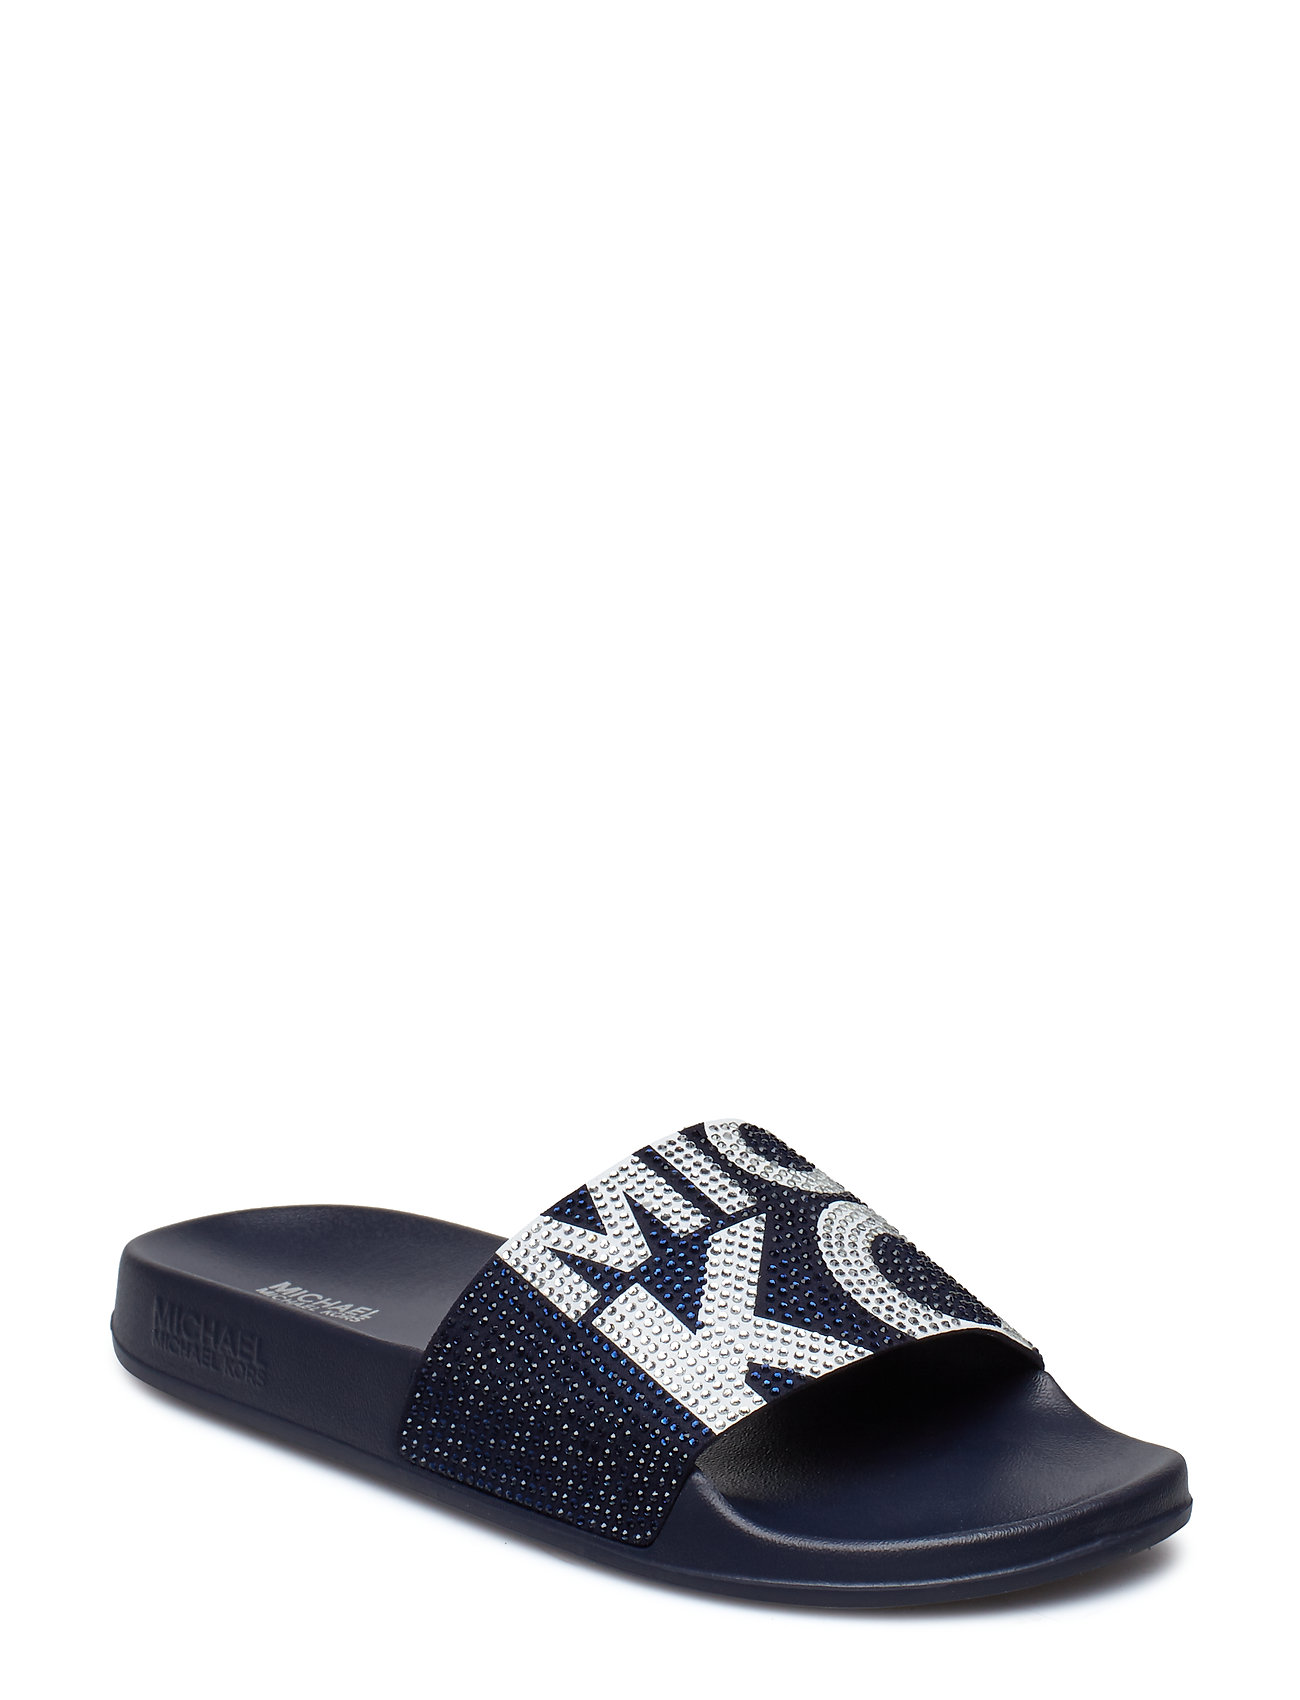 8cc1b1fe226b Gilmore Slide (Admiral) (£70) - Michael Kors Shoes -